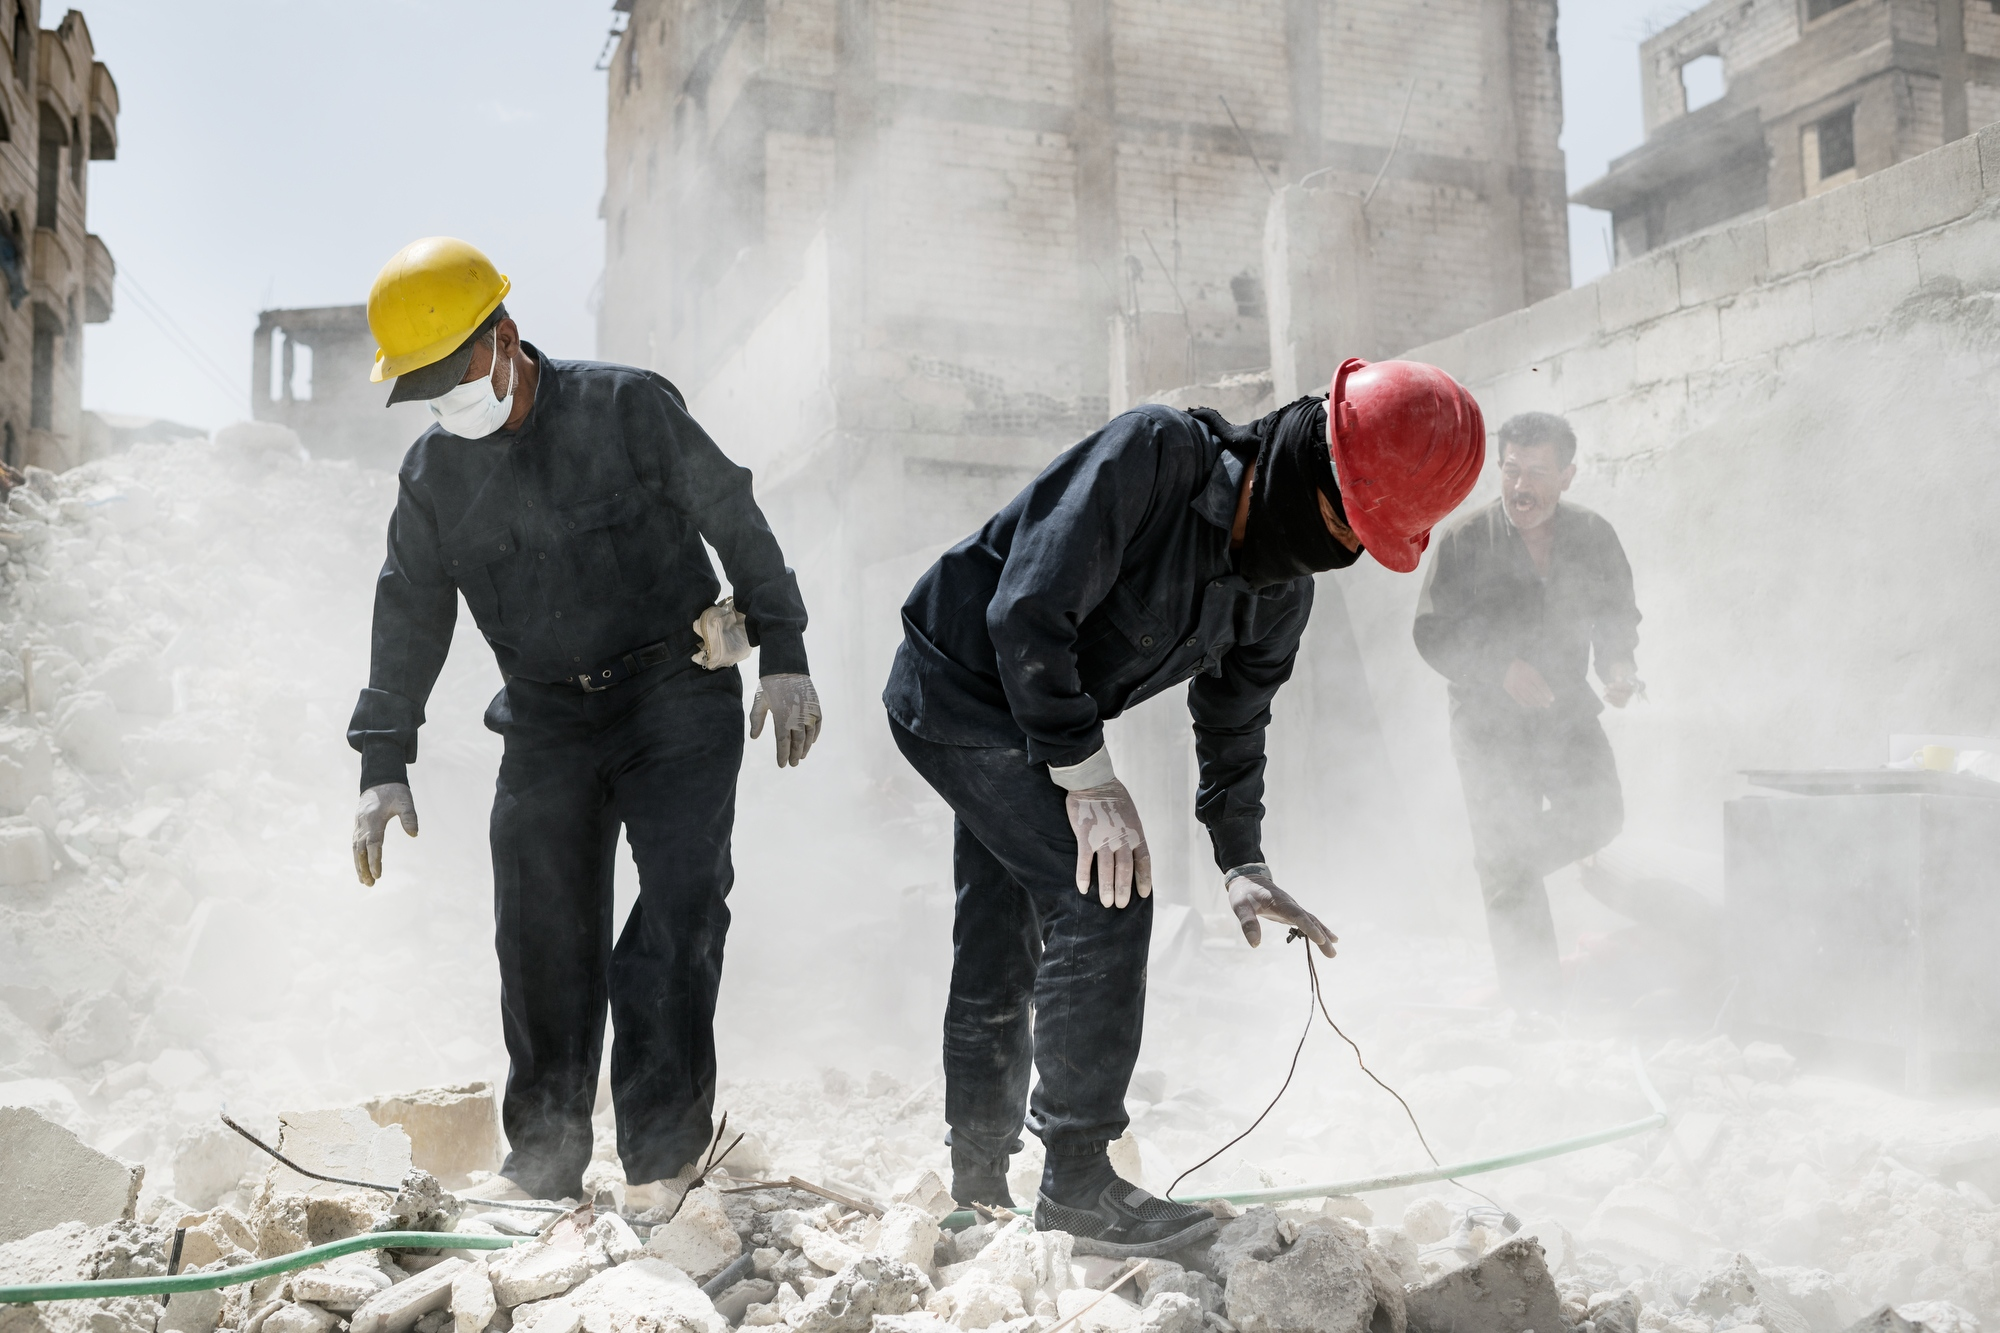 "The first responders team in Raqqa are searching for bodies and human remains in Hay al-Beddo, ""the beduin quarter"" in Raqqa. They have found around 30-40 bodies in this spot. Digging with tractors and heavy machinery and then manually going through the gravel and debris."